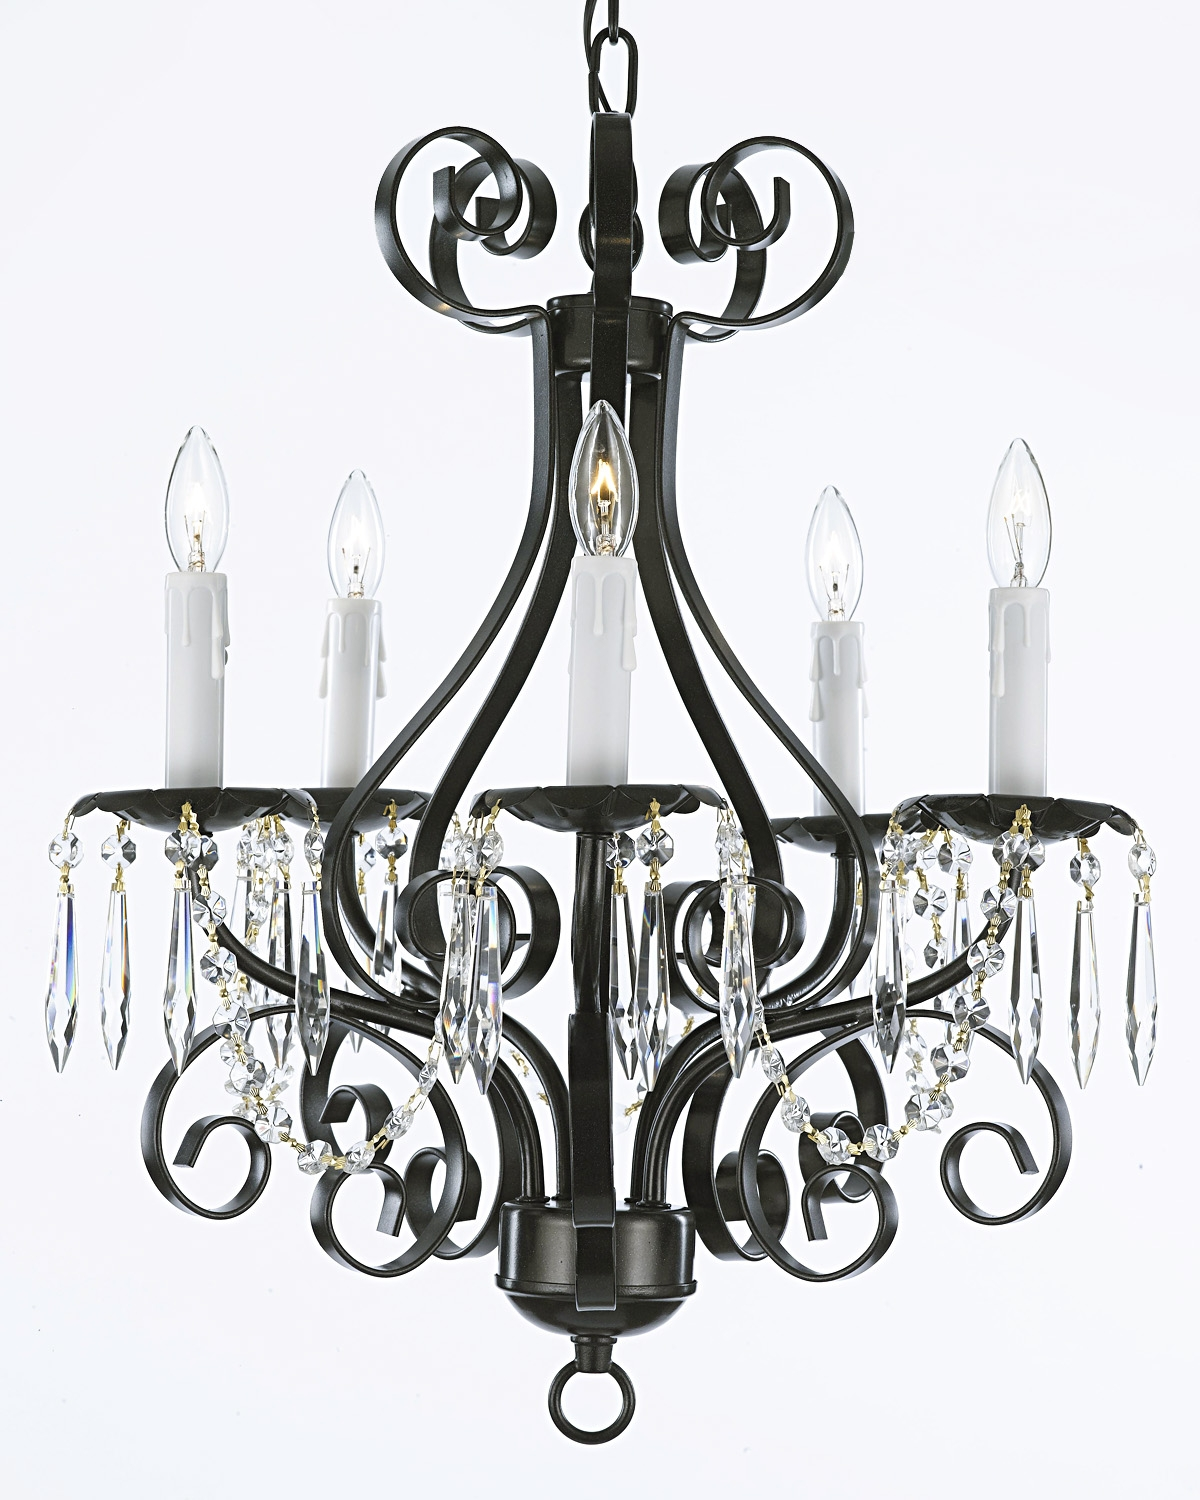 Chandelier Astounding French Country Chandelier French Country Throughout French Country Chandeliers (View 3 of 25)